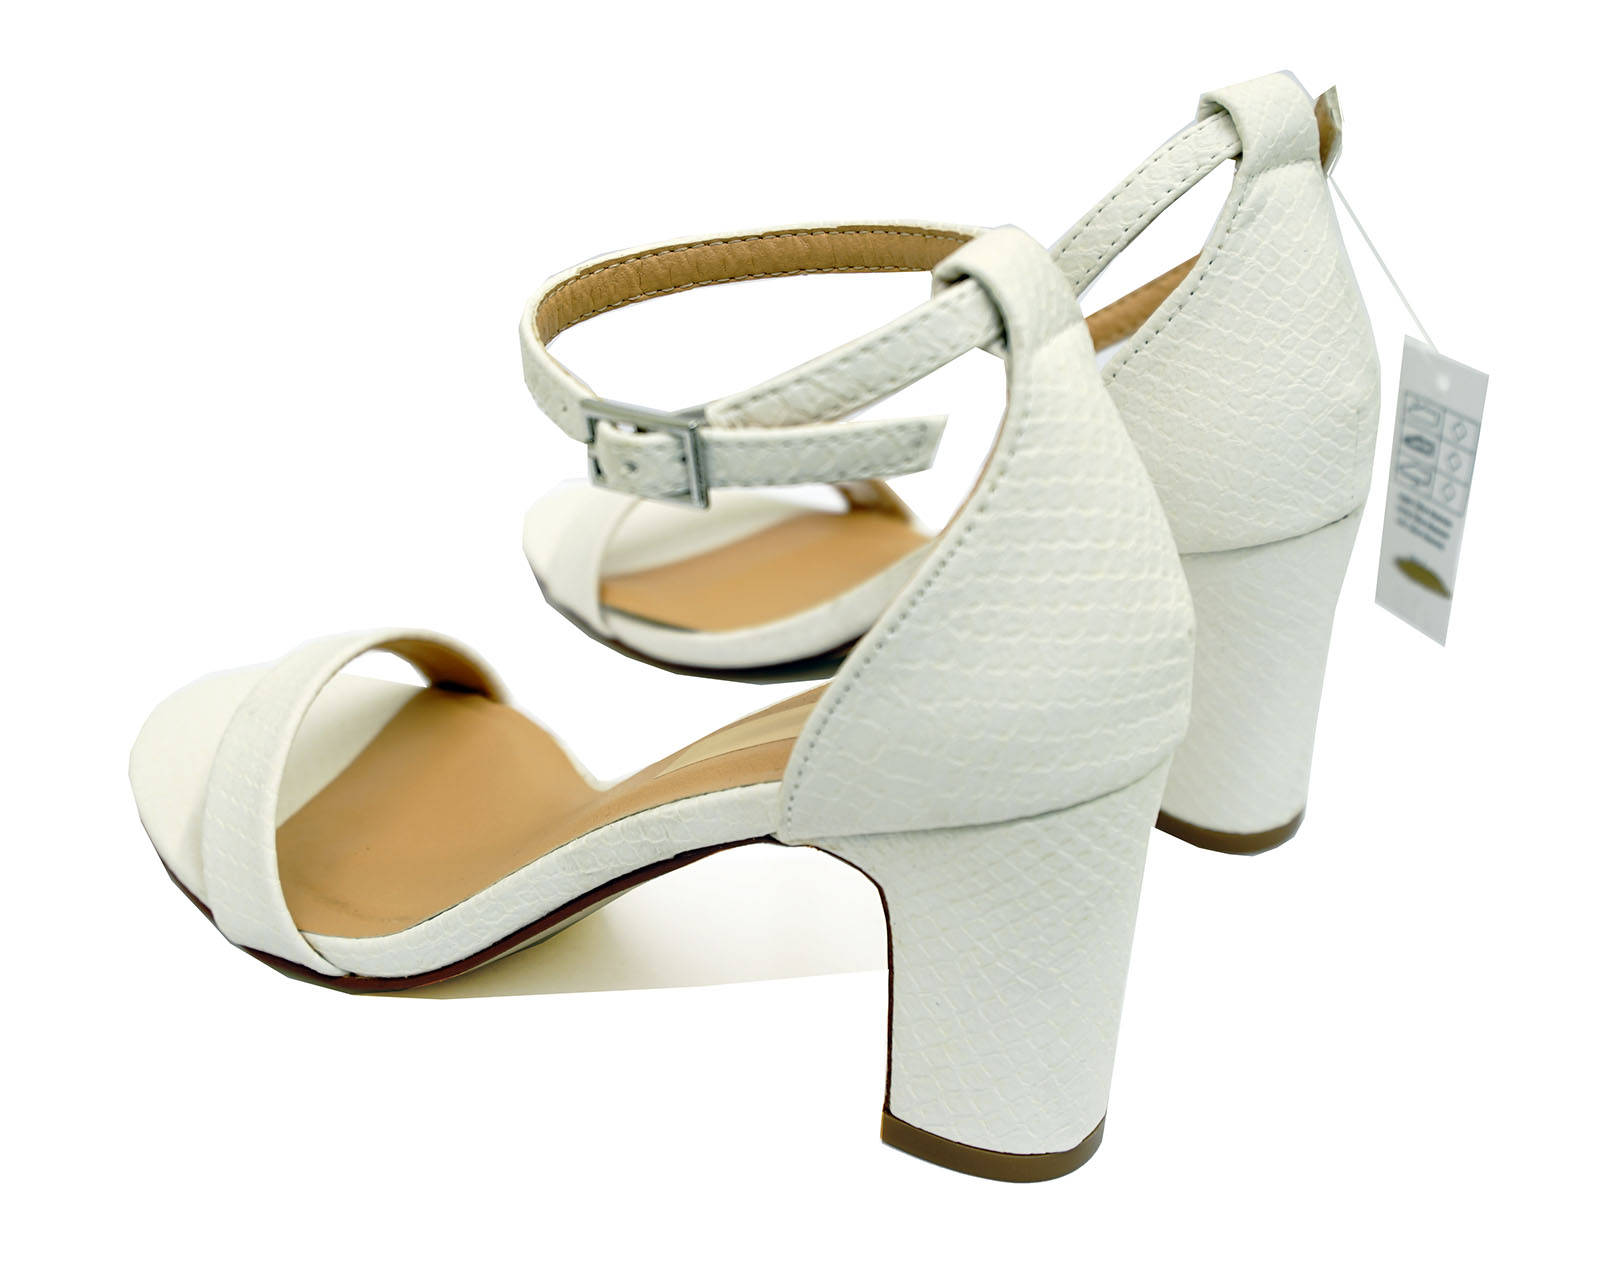 LADIES-WHITE-ANKLE-STRAP-BLOCK-HEEL-PEEPTOE-SANDALS-HOLIDAY-COMFY-SHOES-UK-3-8 thumbnail 24